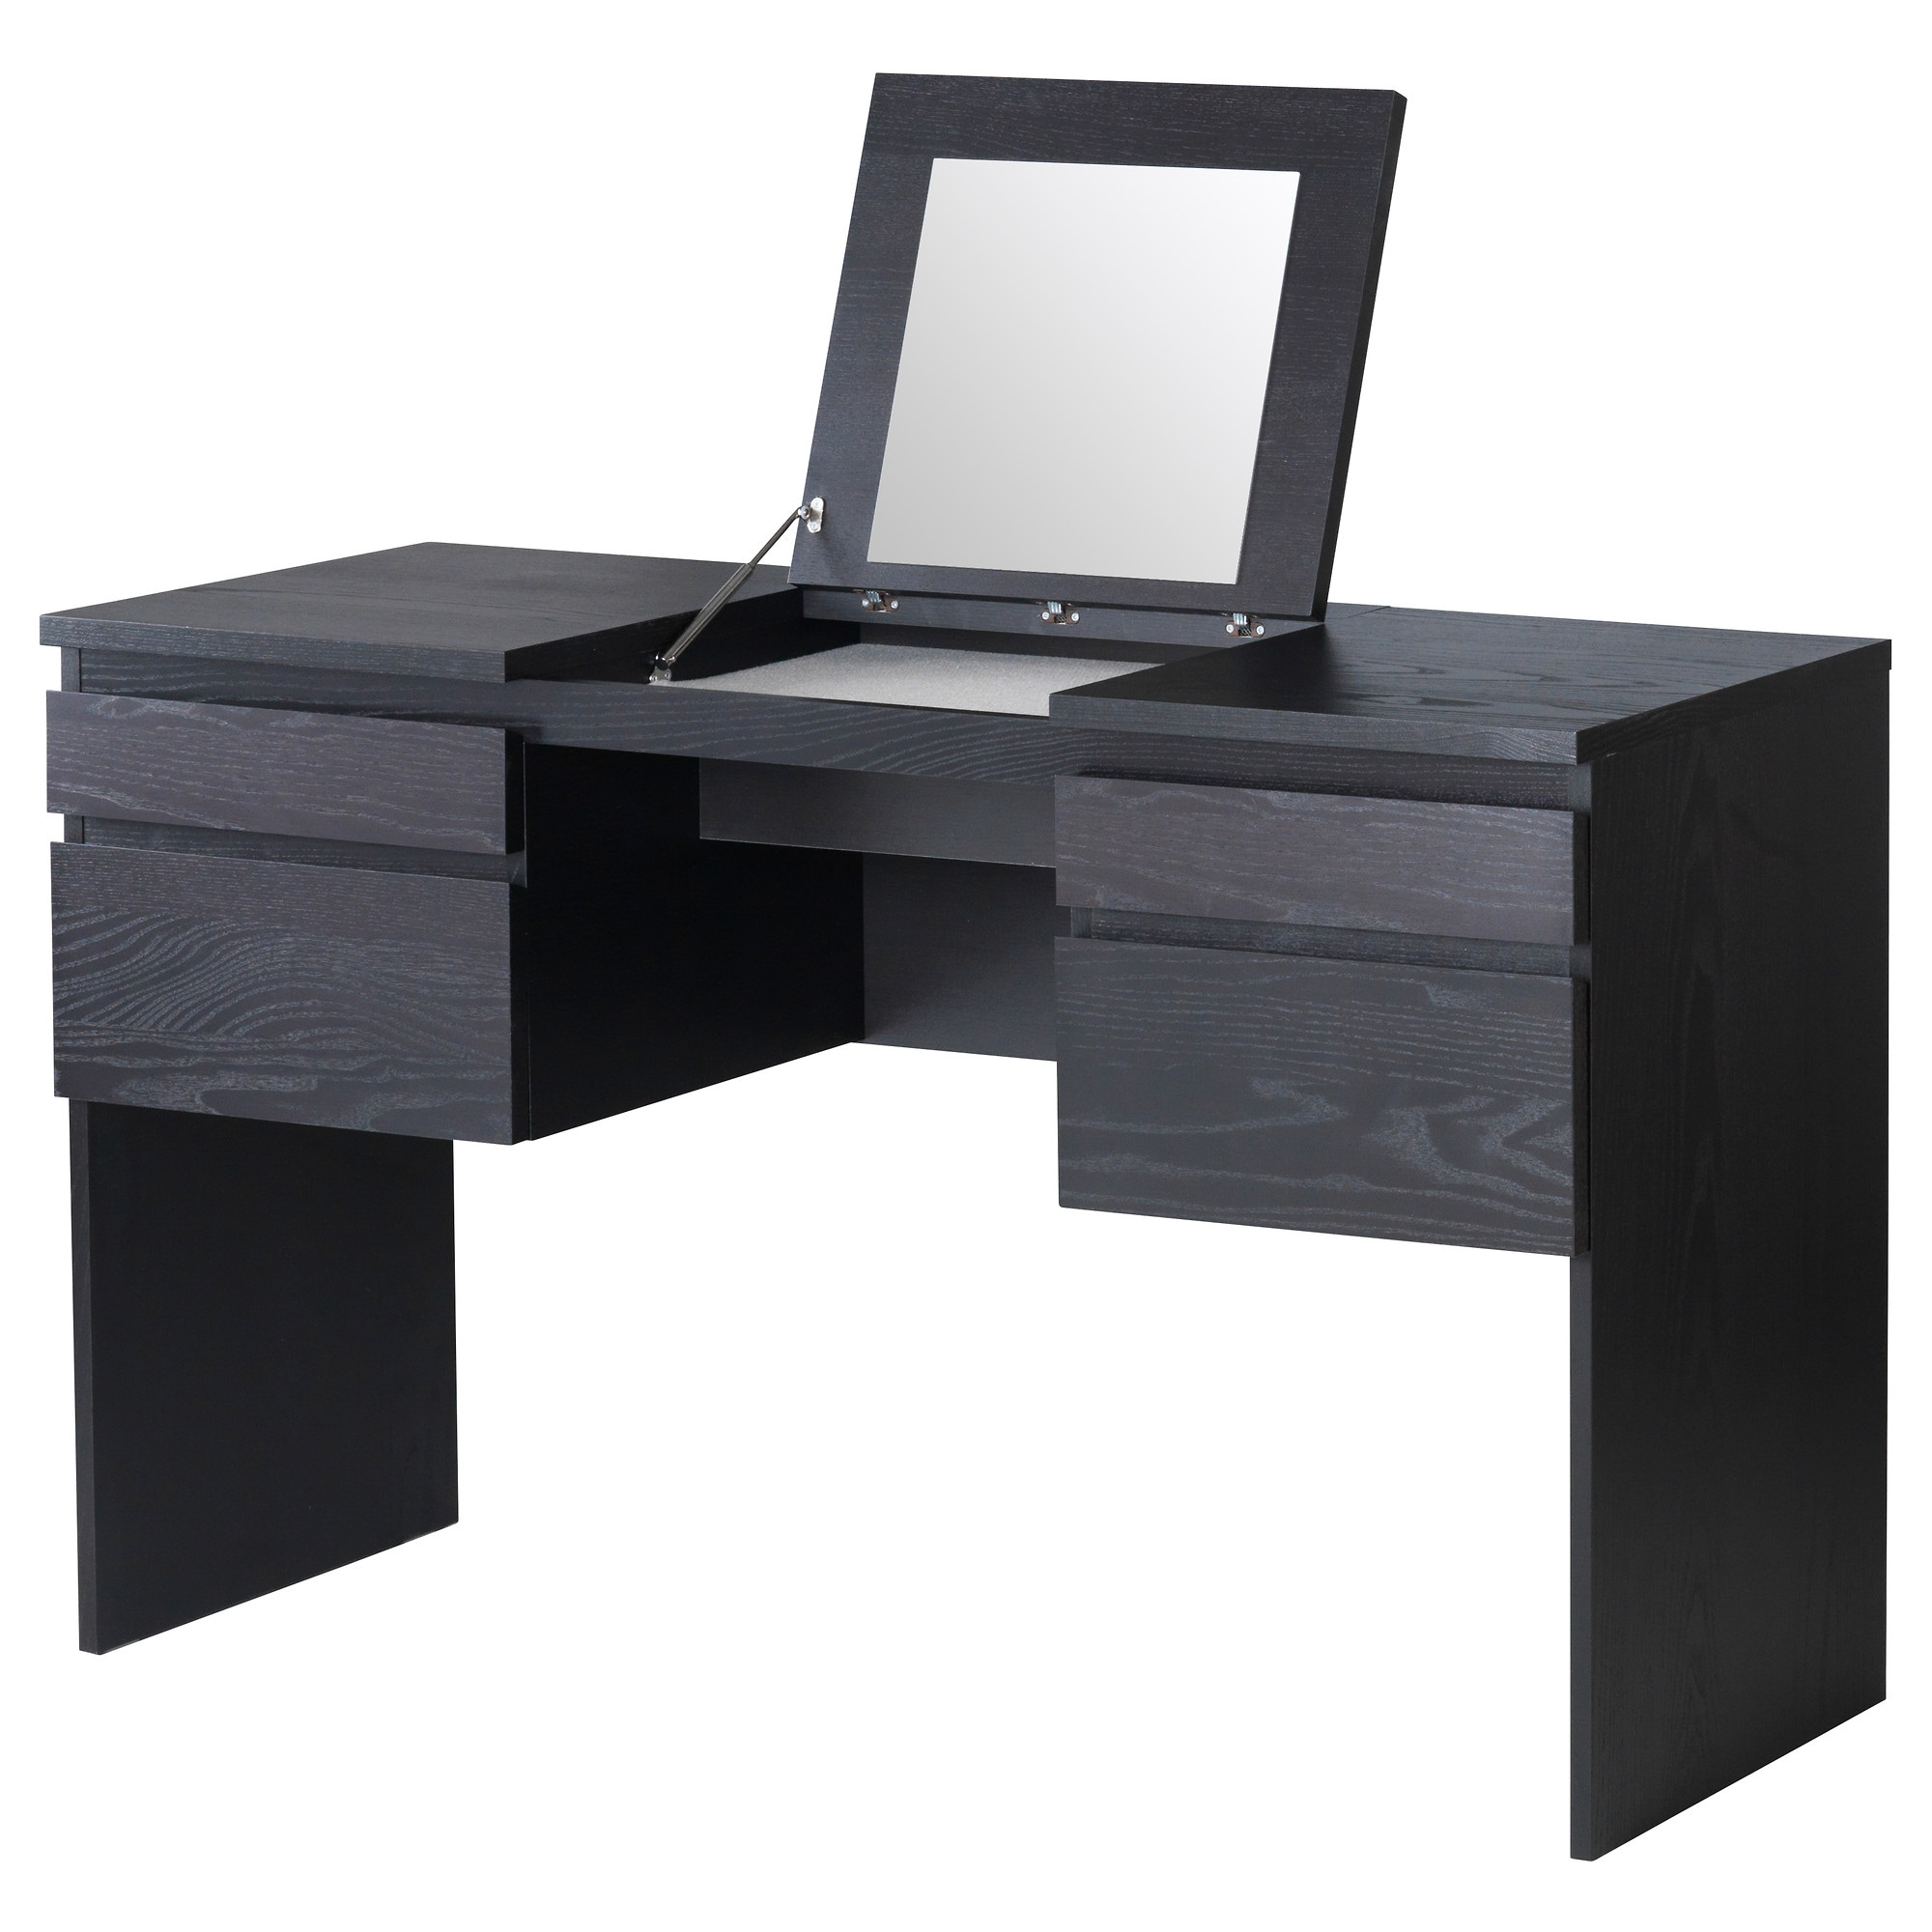 Black Vanity Table With Mirror Viewing Gallery